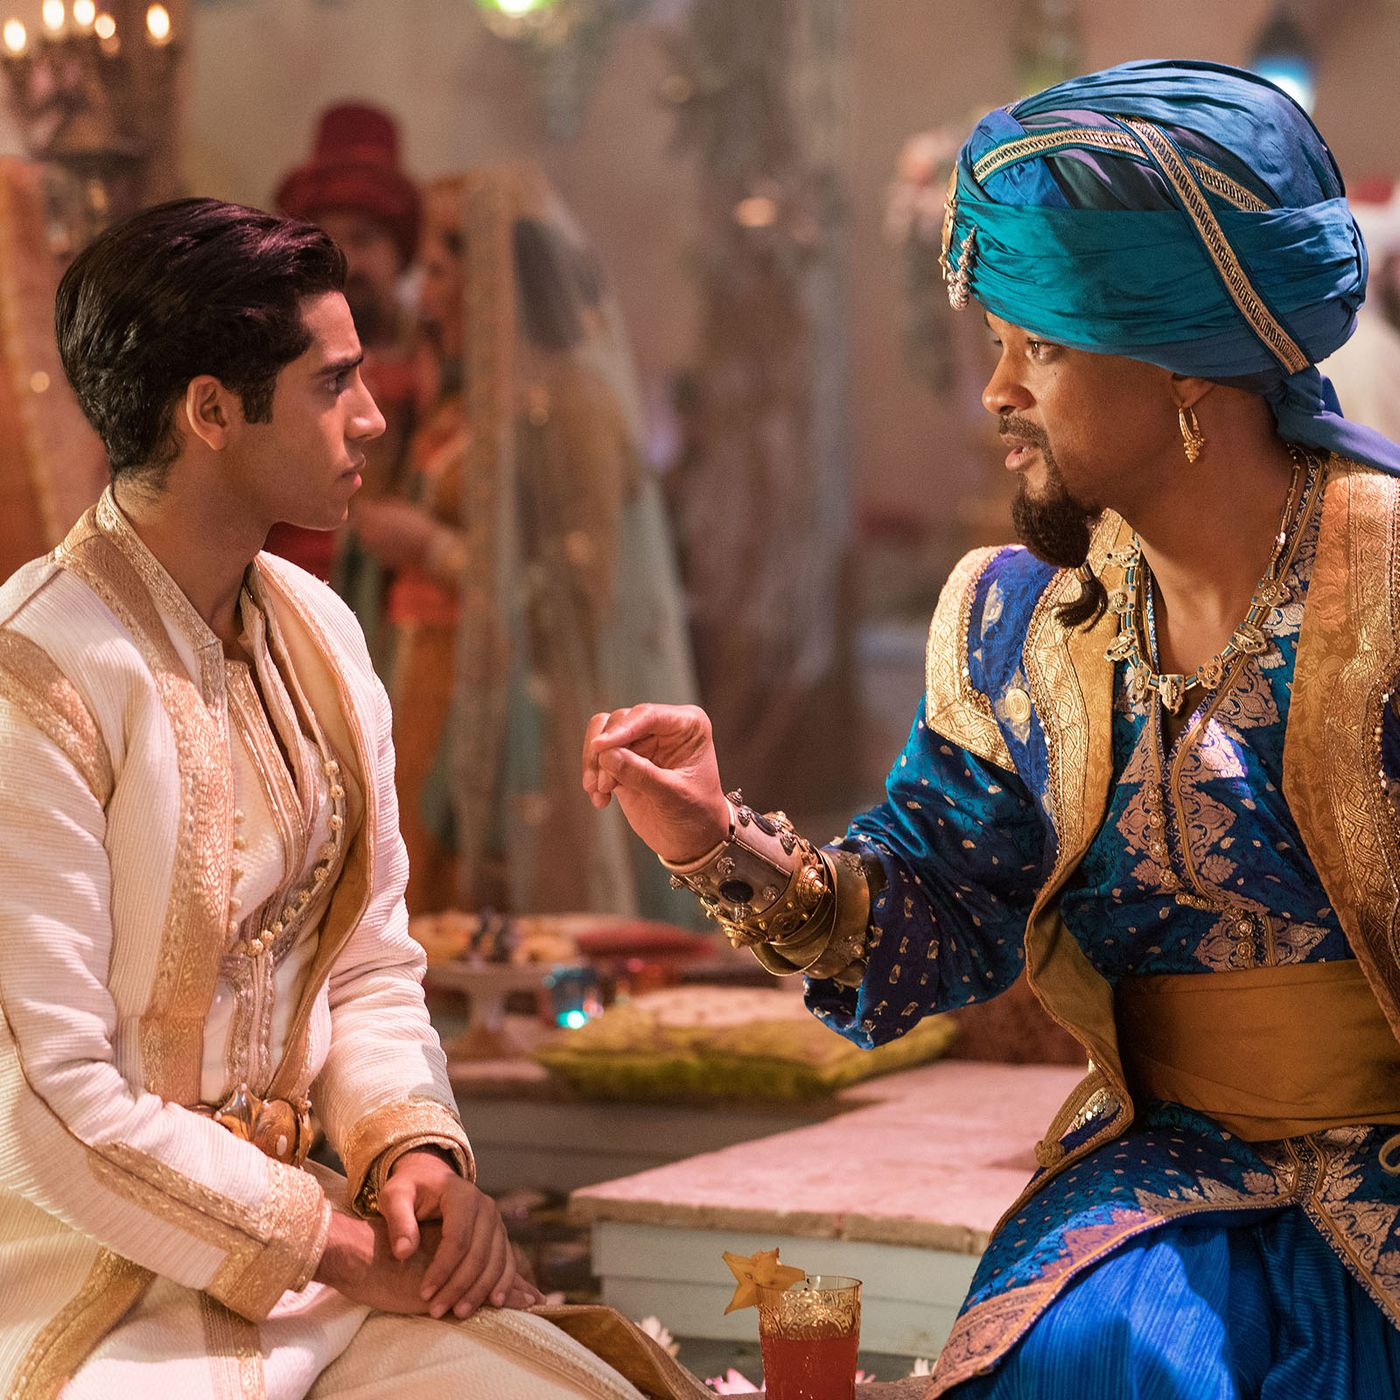 Review disneys live action aladdin is half charming half dreadful vox